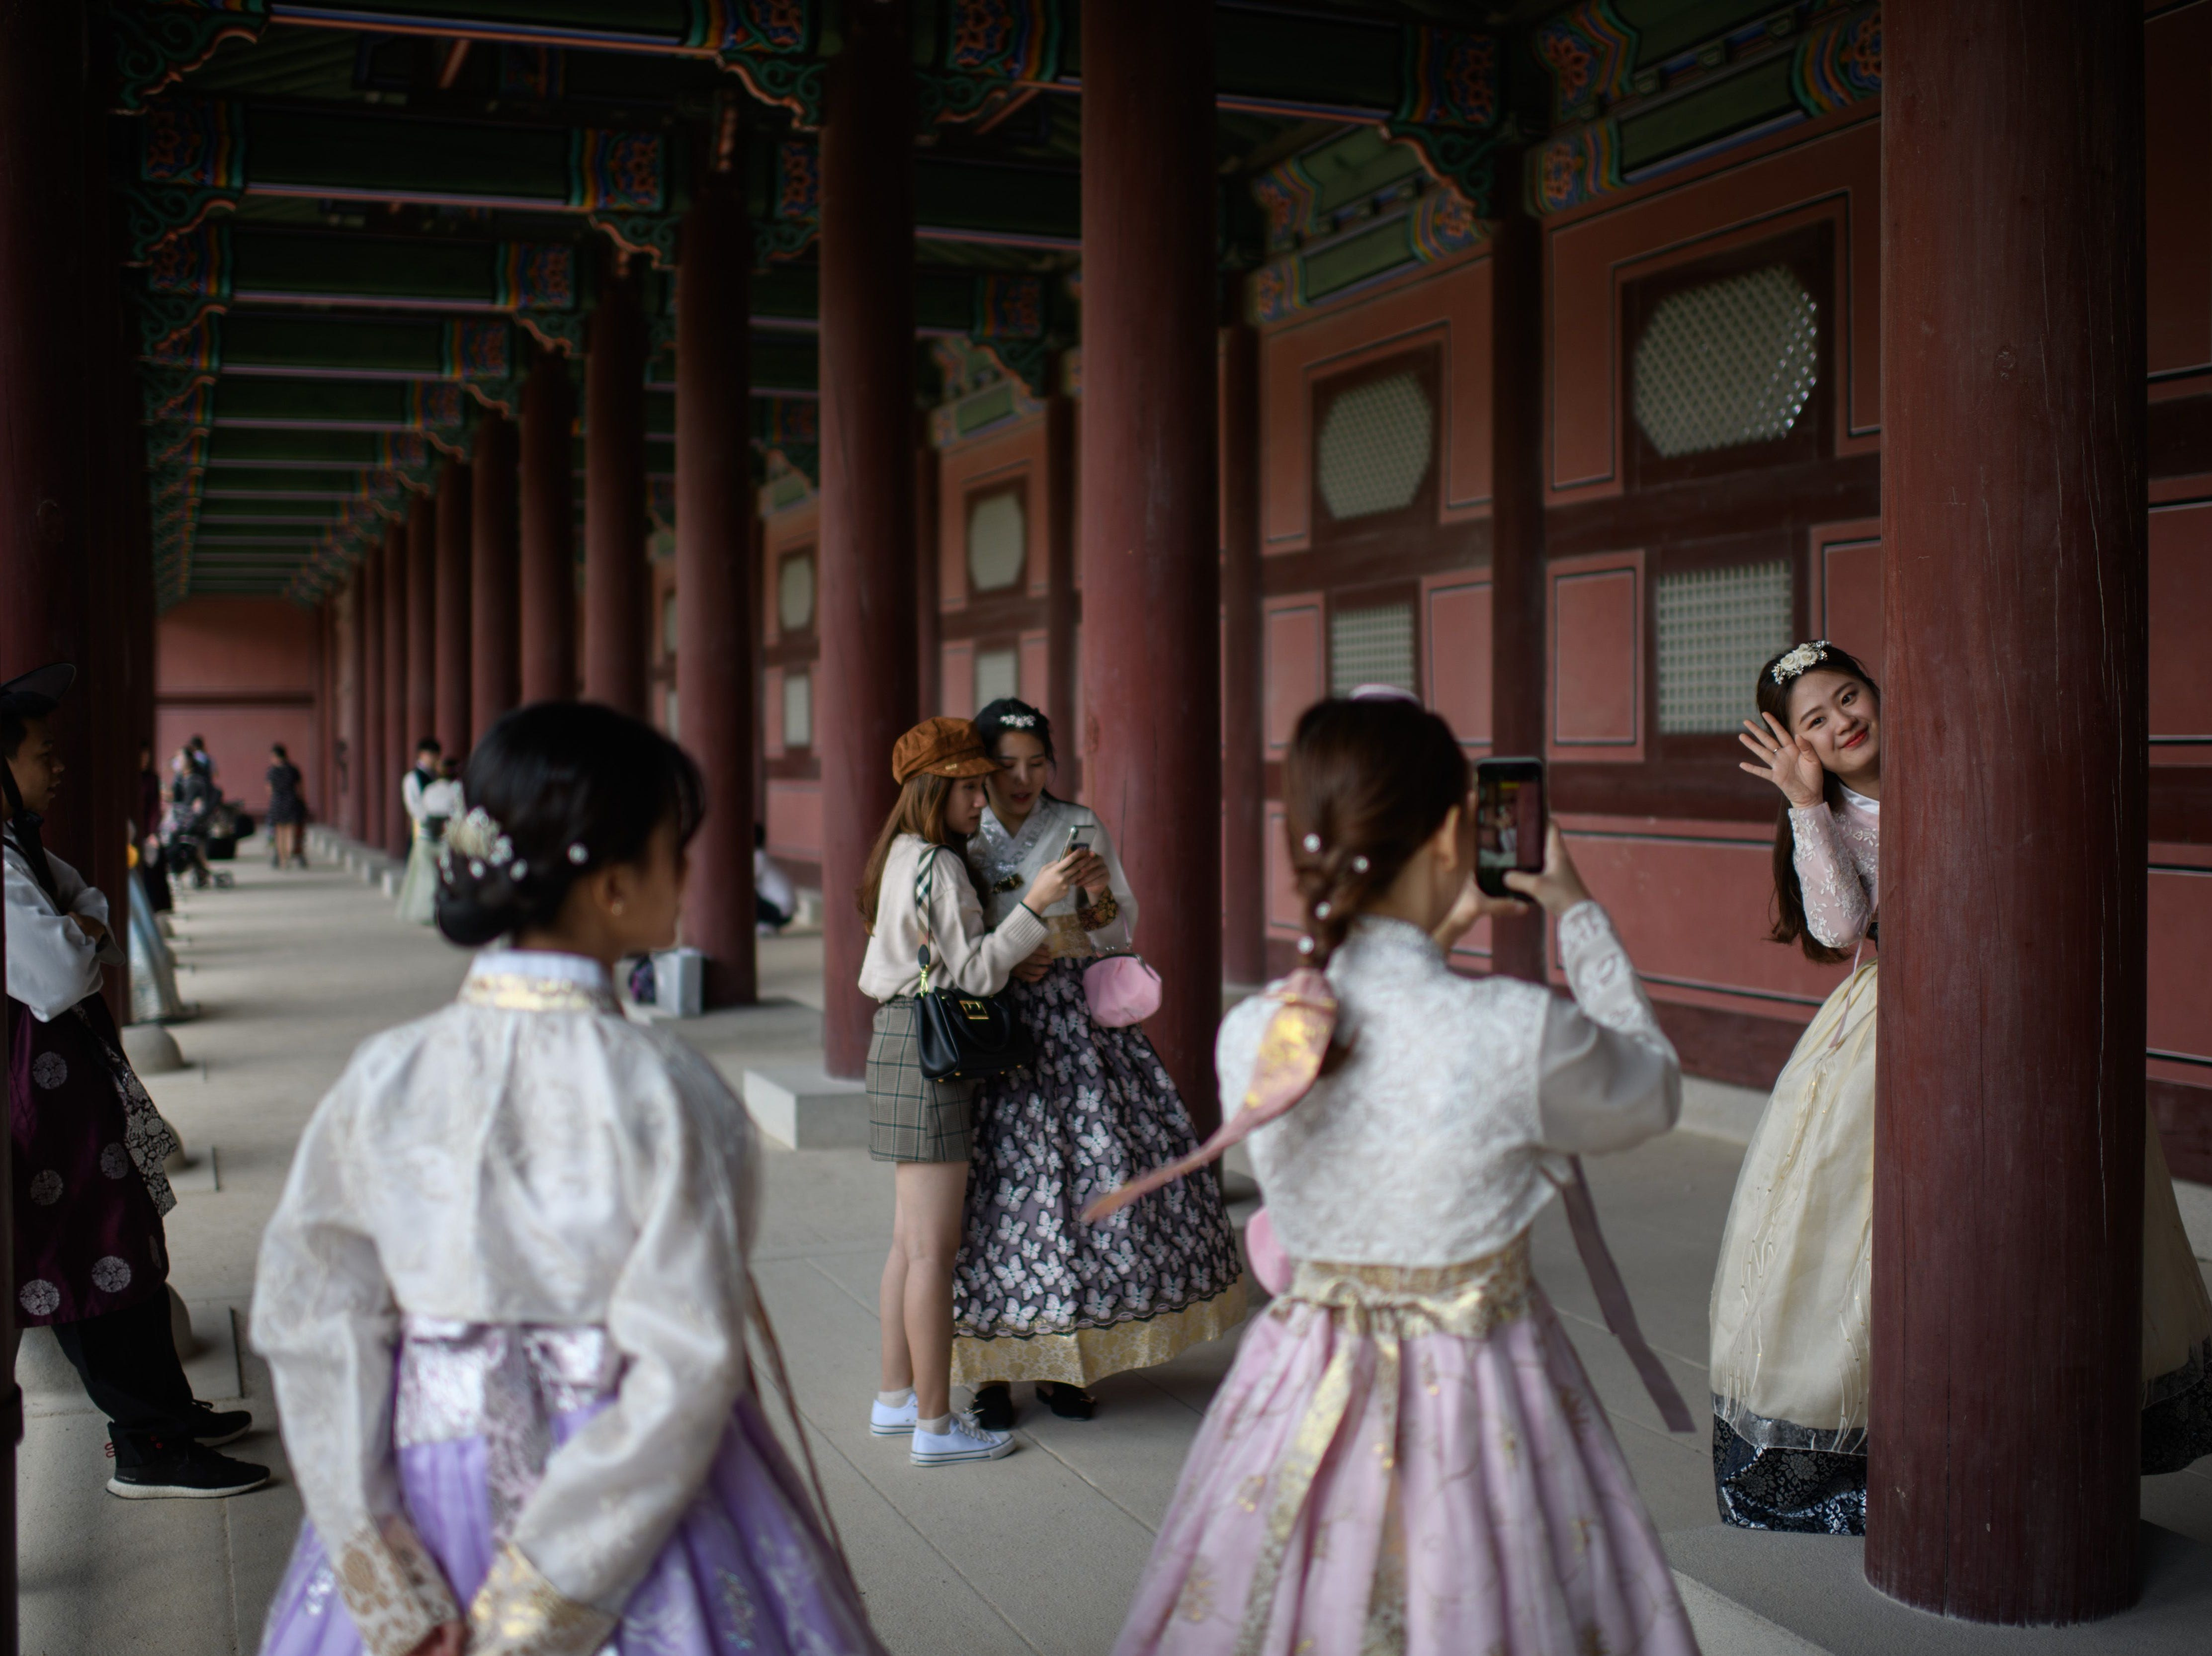 Visitors wearing traditional Korean Hanbok dresses pose for photos at the Gyeongbokgung palace in Seoul on Sept. 26, 2018. South Korea is observing the final day of the annual 'Chuseok' thanksgiving holiday.